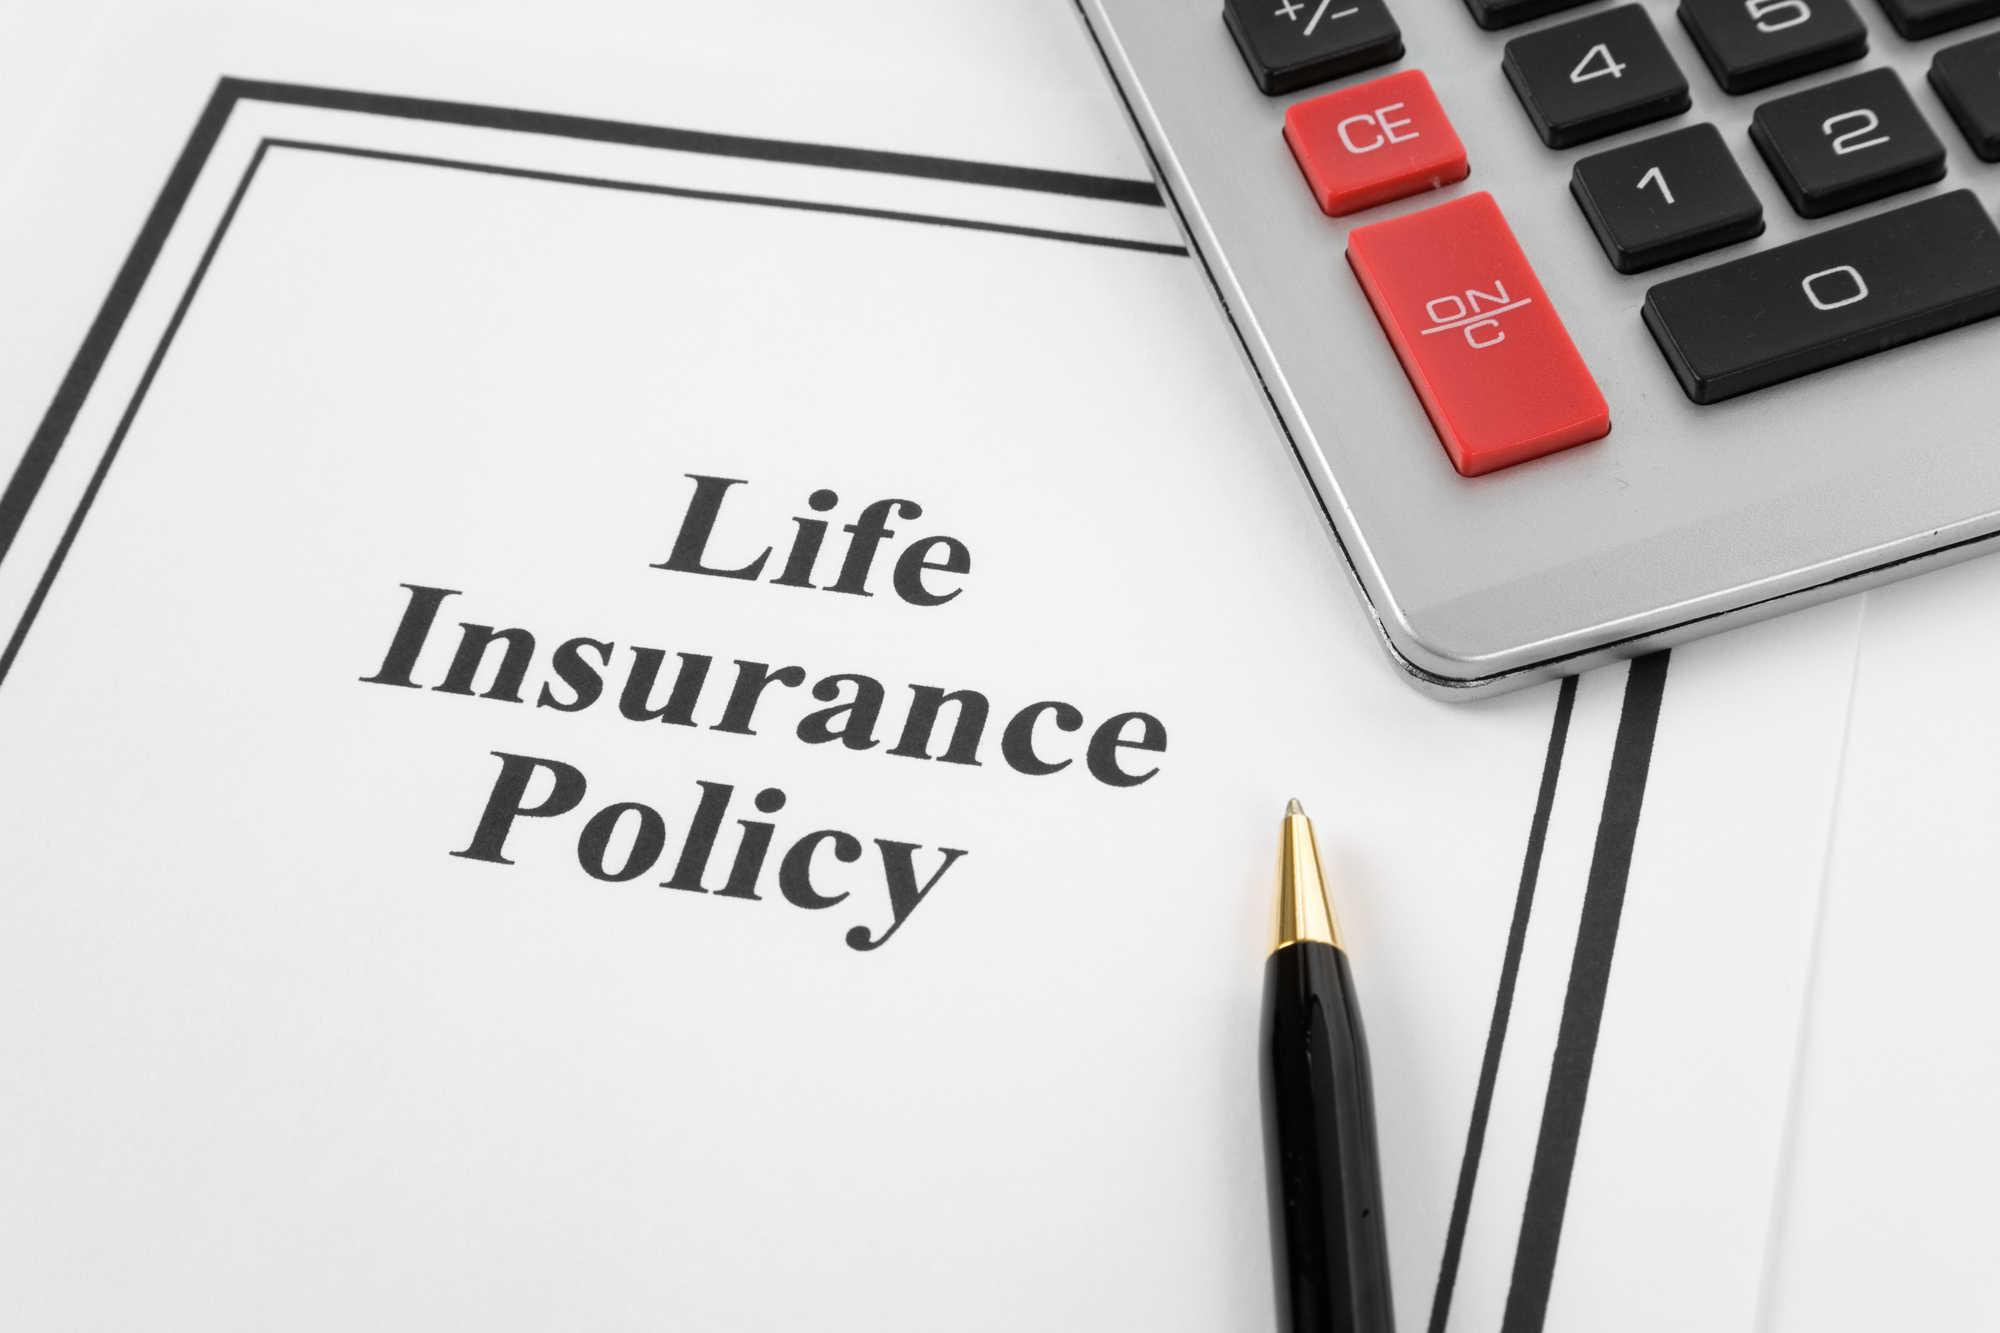 Life Insurance Quote Calculator Life Insurance  Diaz Insurance  Diaz Insurance Online